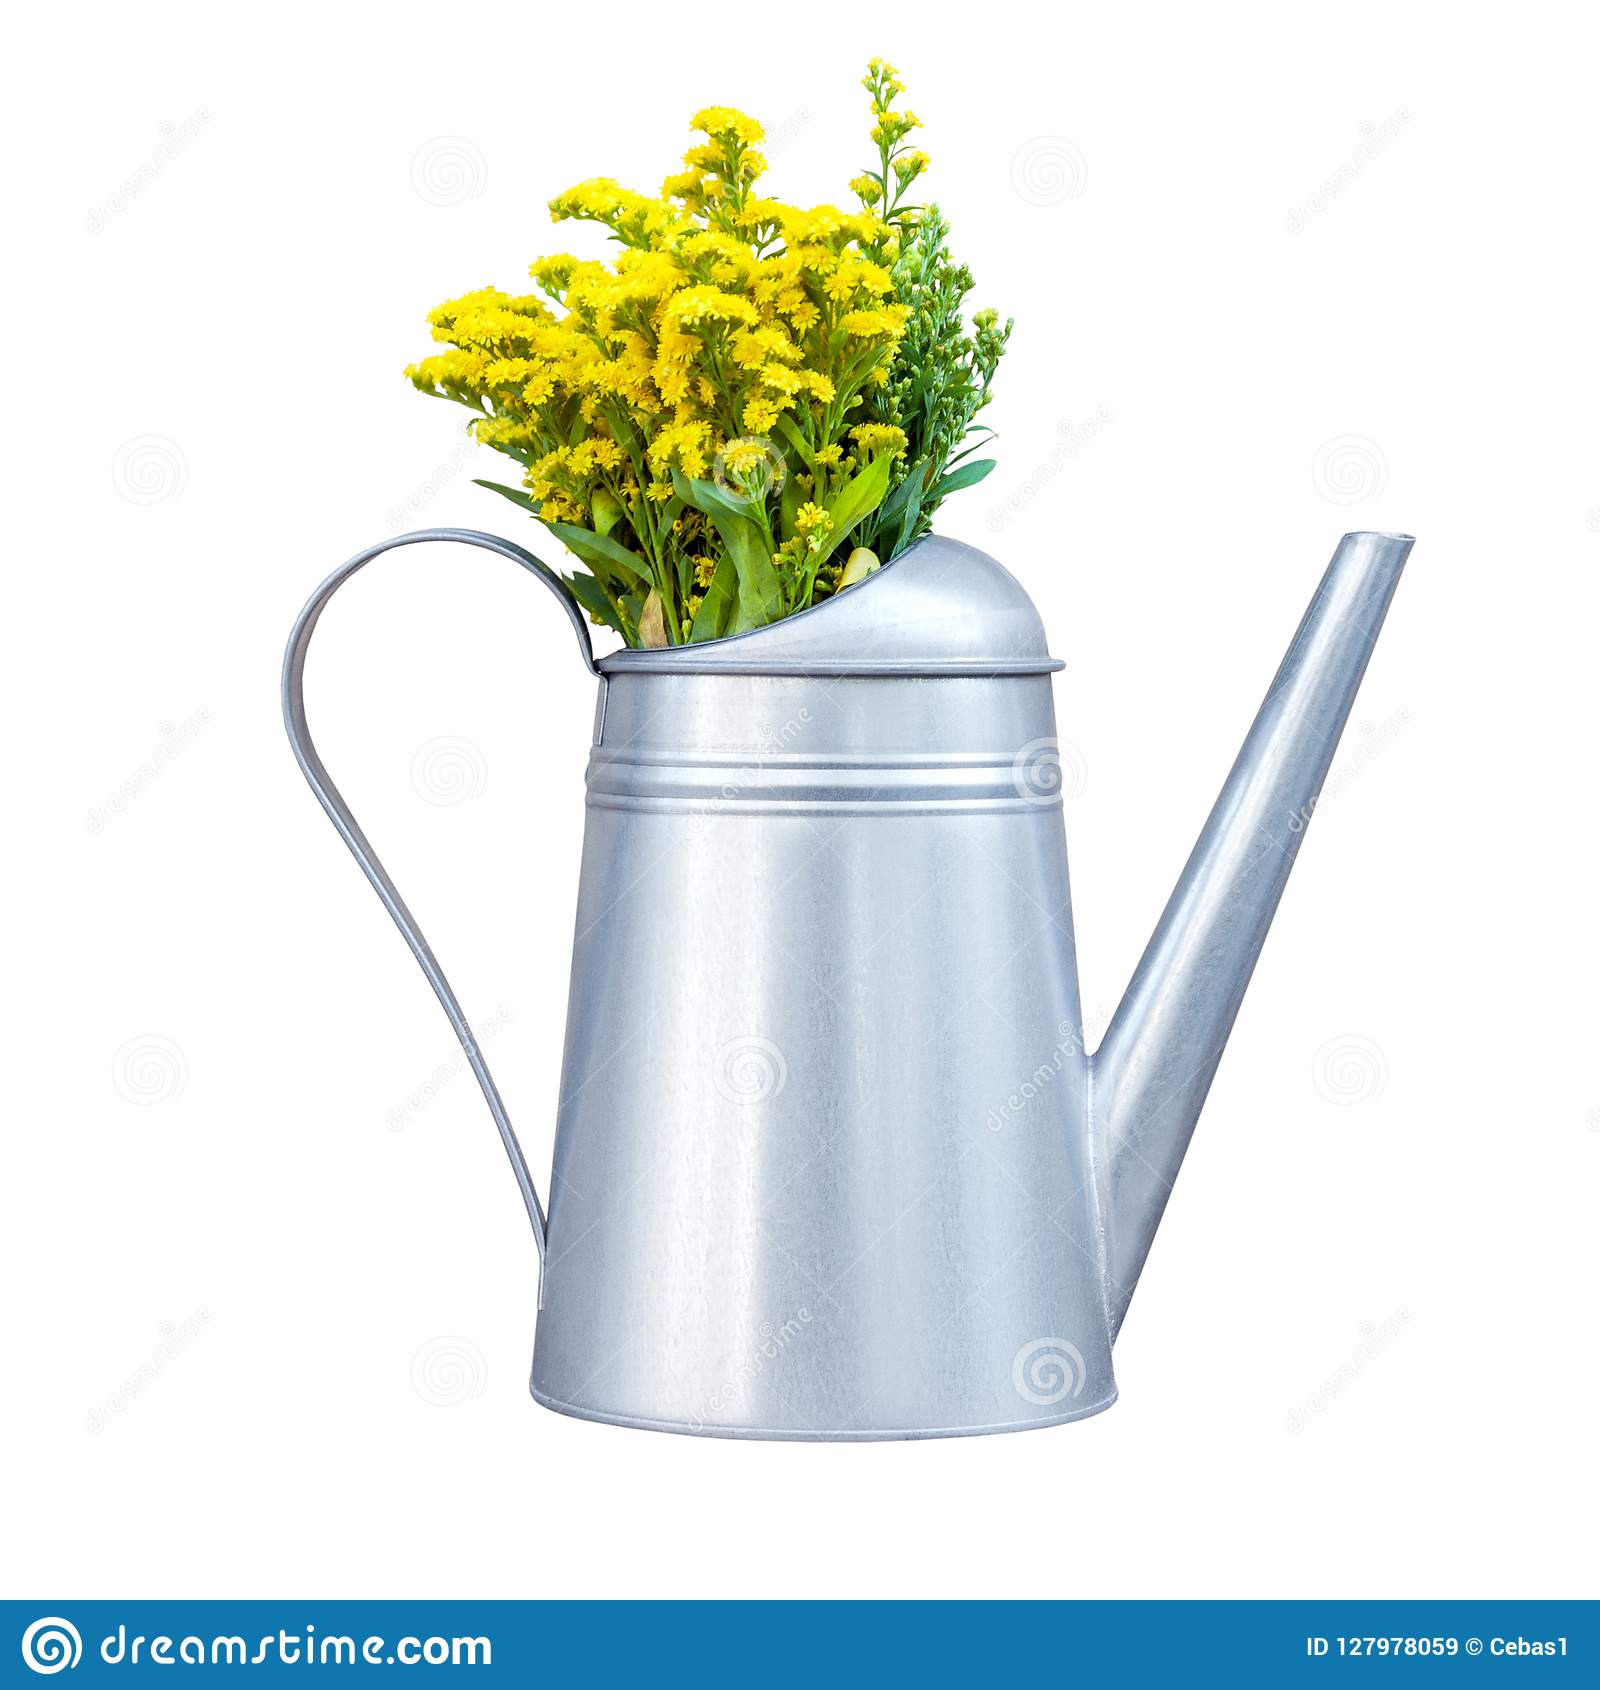 Decorative metal watering-can with yellow wildflowers isolated